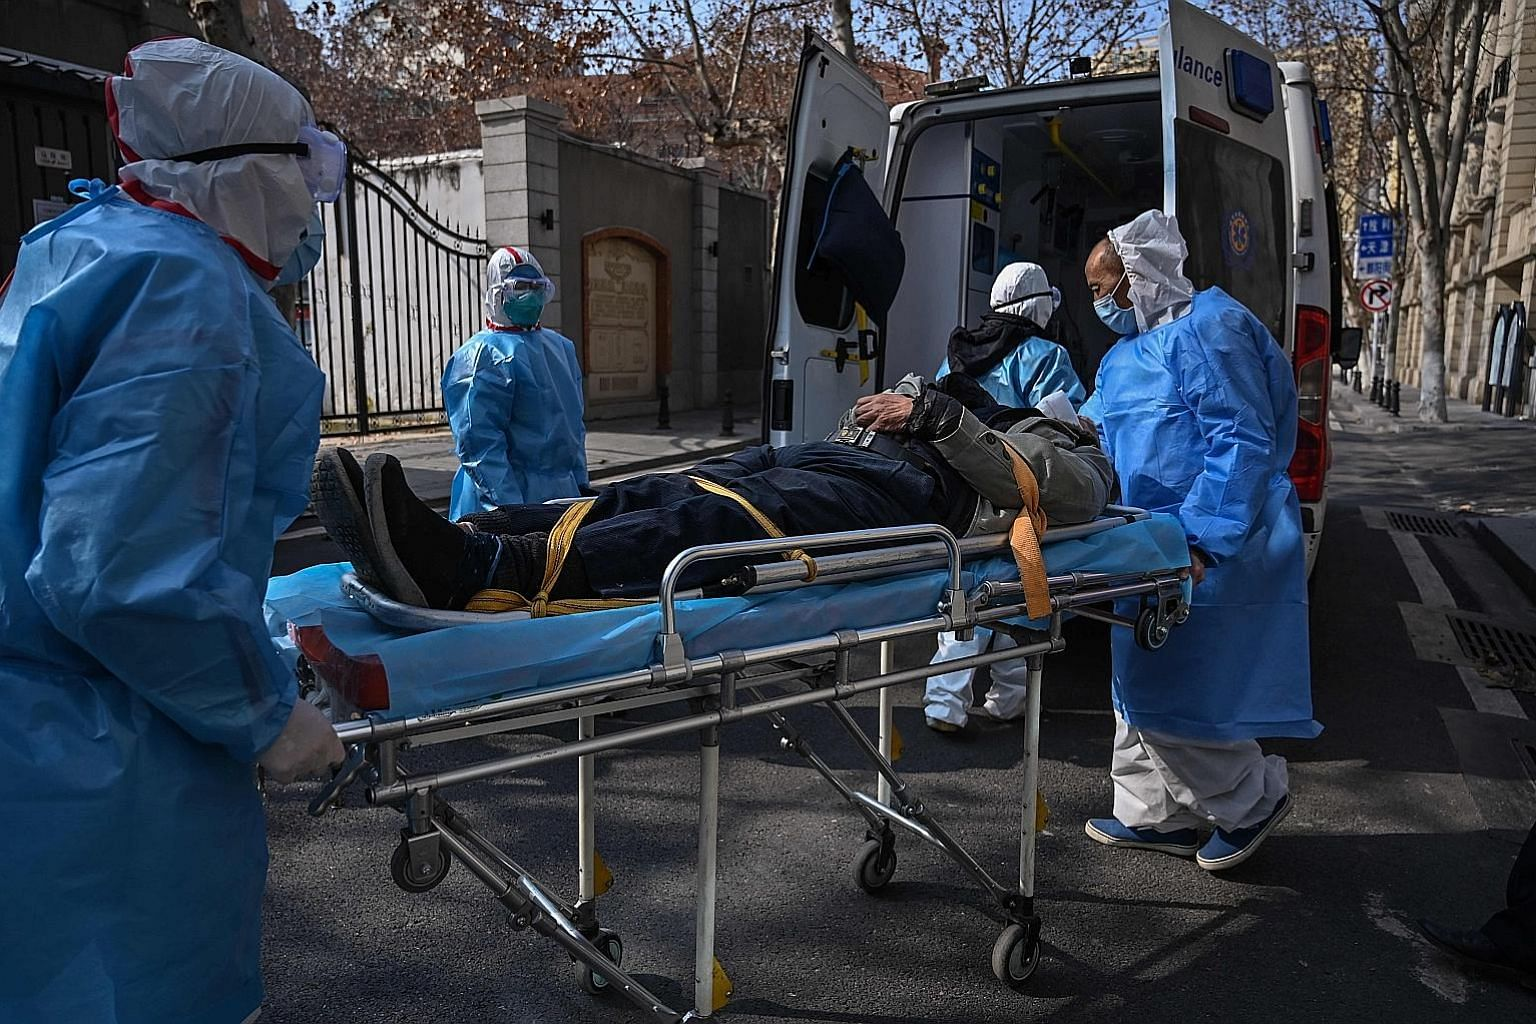 Medical staff taking away a patient suspected of having contracted the Wuhan virus in the city in China's Hubei province last Thursday. Asean's tourism sector will be affected, after China ordered all tour groups to be suspended until the virus is co